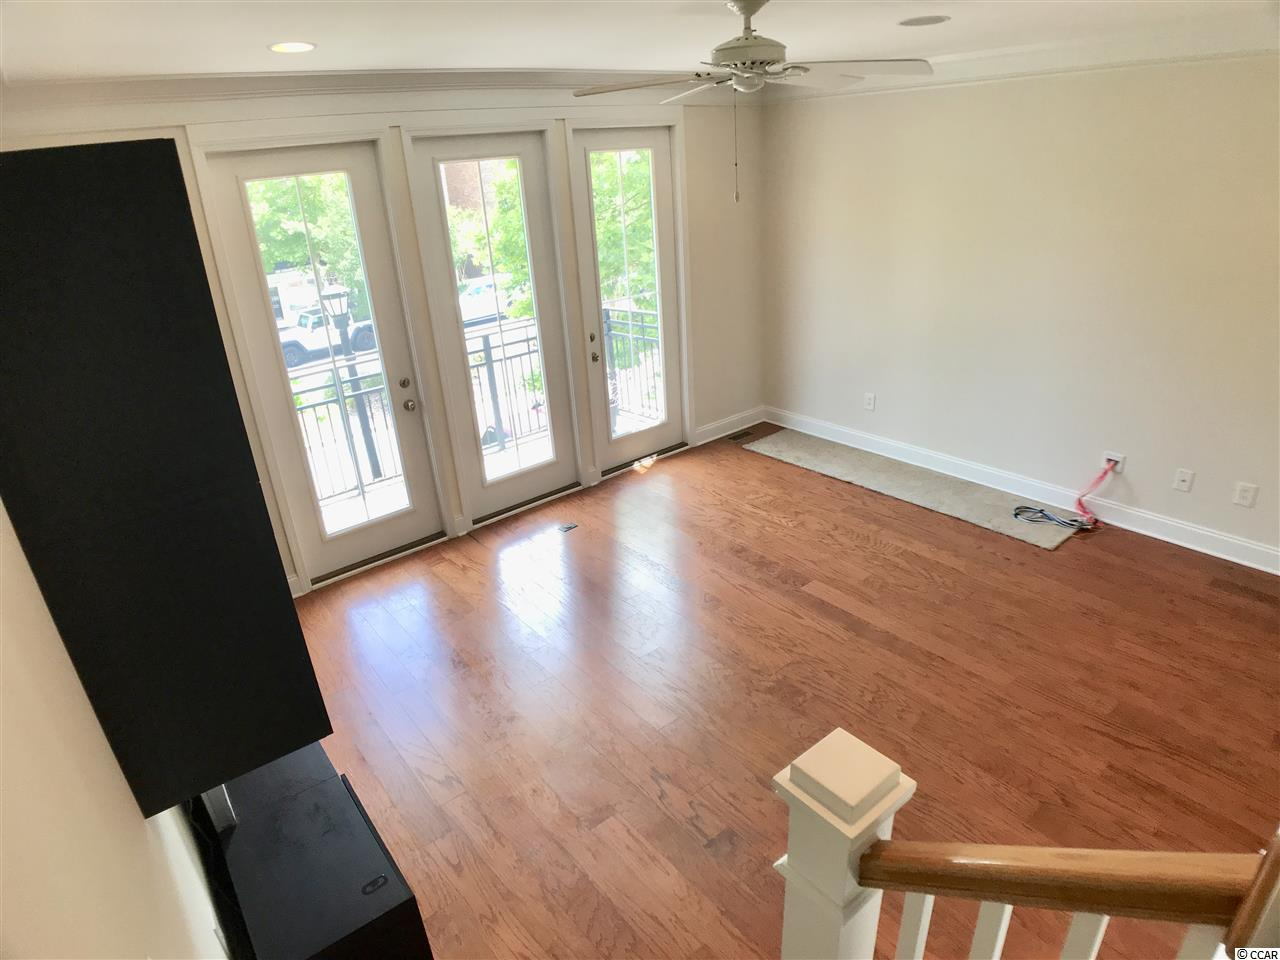 View this 2 bedroom condo for sale at  Market Common, The in Myrtle Beach, SC